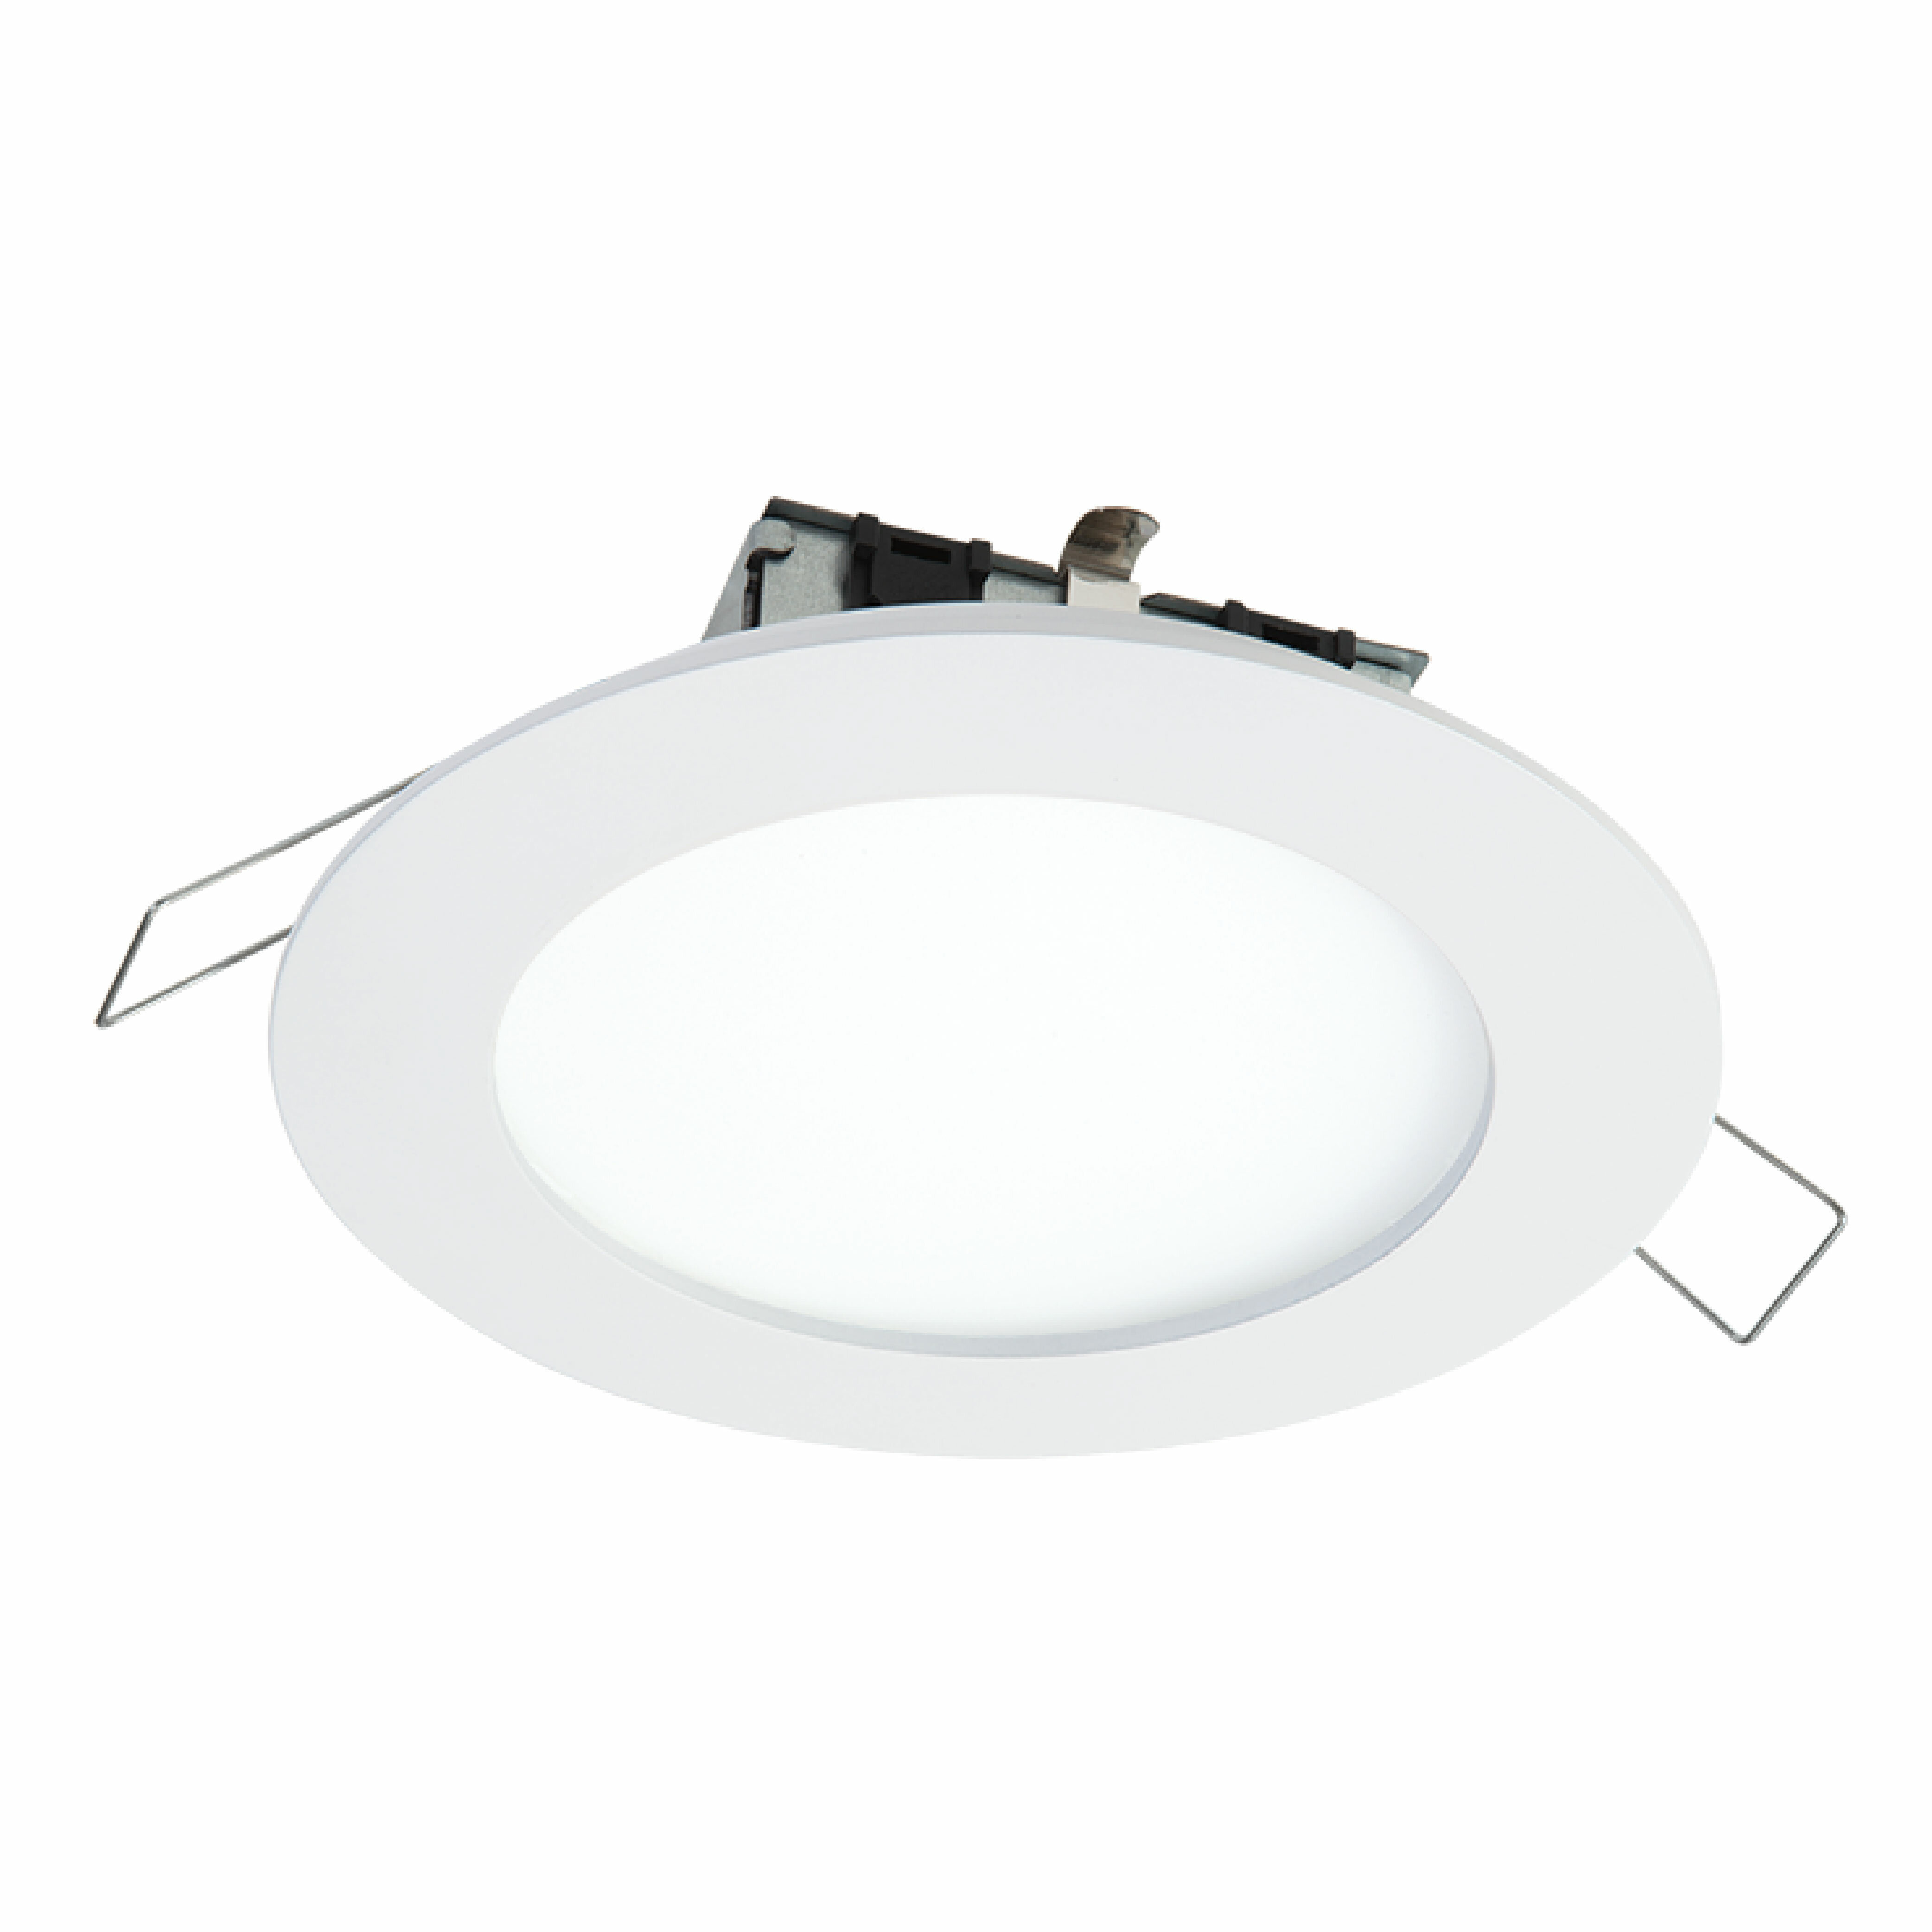 Cooper Lighting Llc 7 Remodel Led Retrofit Recessed Lighting Kit Wayfair